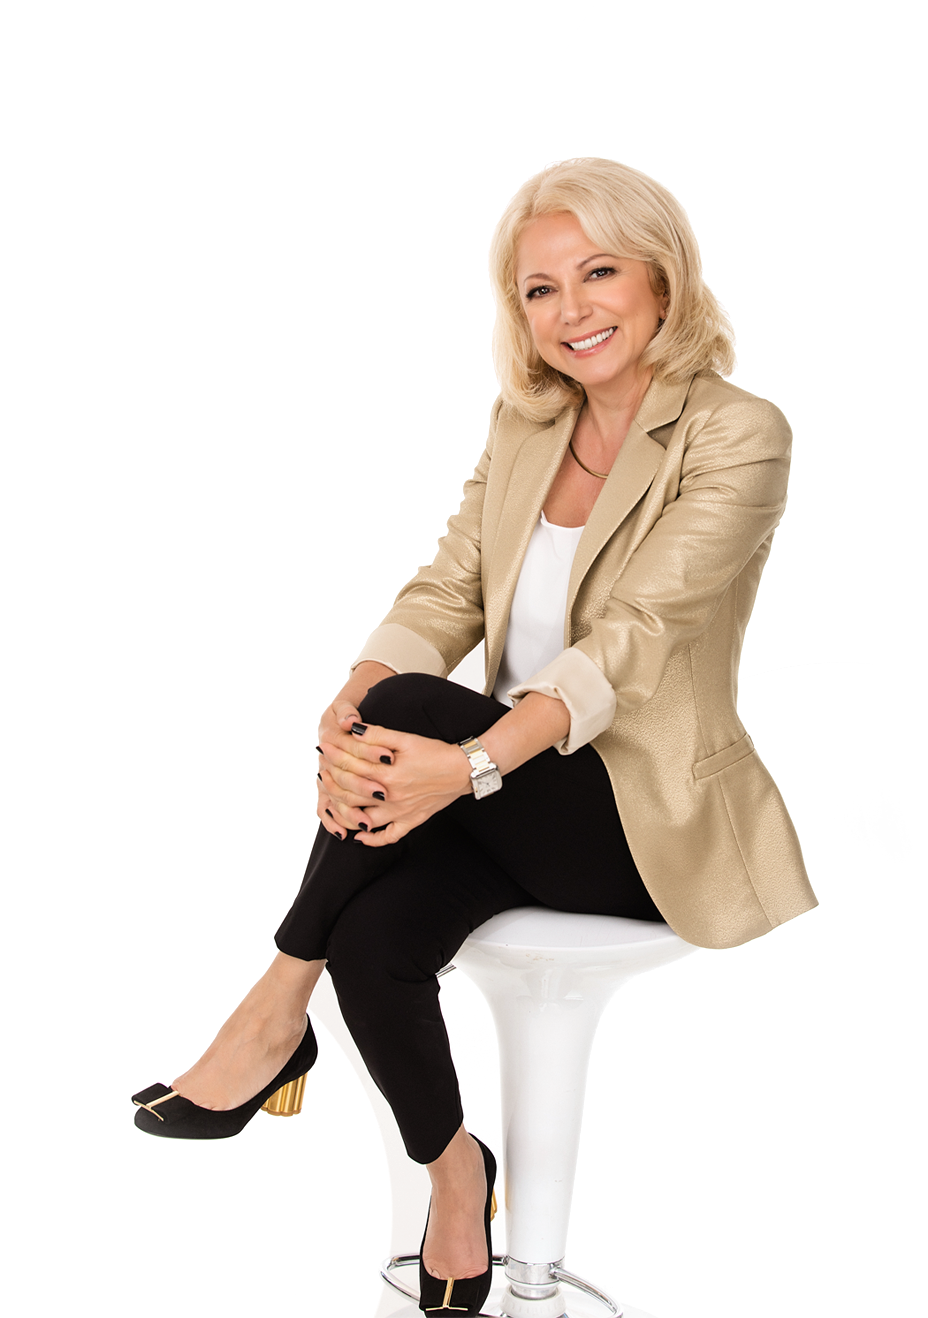 Image Depicting Dori smiling, in a seated position with her hands crossing below her knee